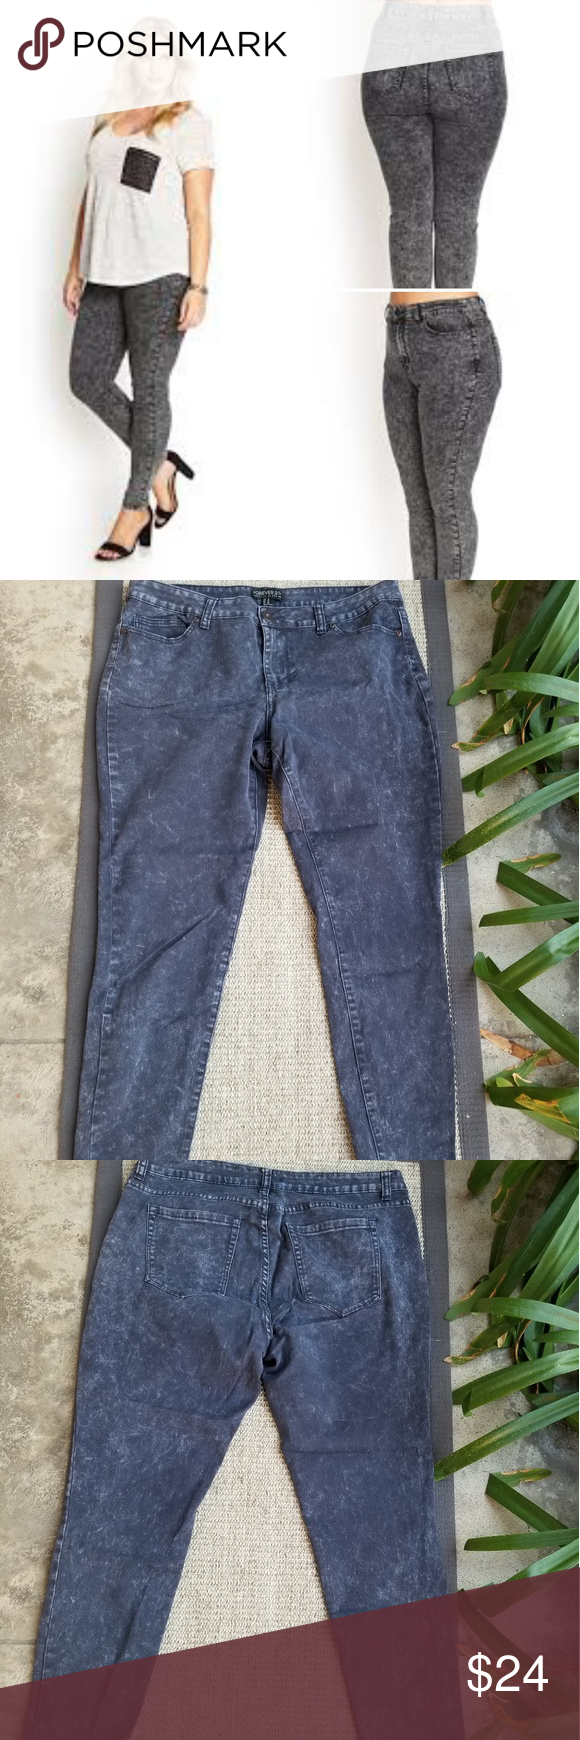 5aefca20ae Forever 21 + Plus Size black acid wash Jean sz.16 Forever 21+ Plus Size  high waist black acid wash skinny Jean s. Tag Size 16. Preloved. No stains  or holes.